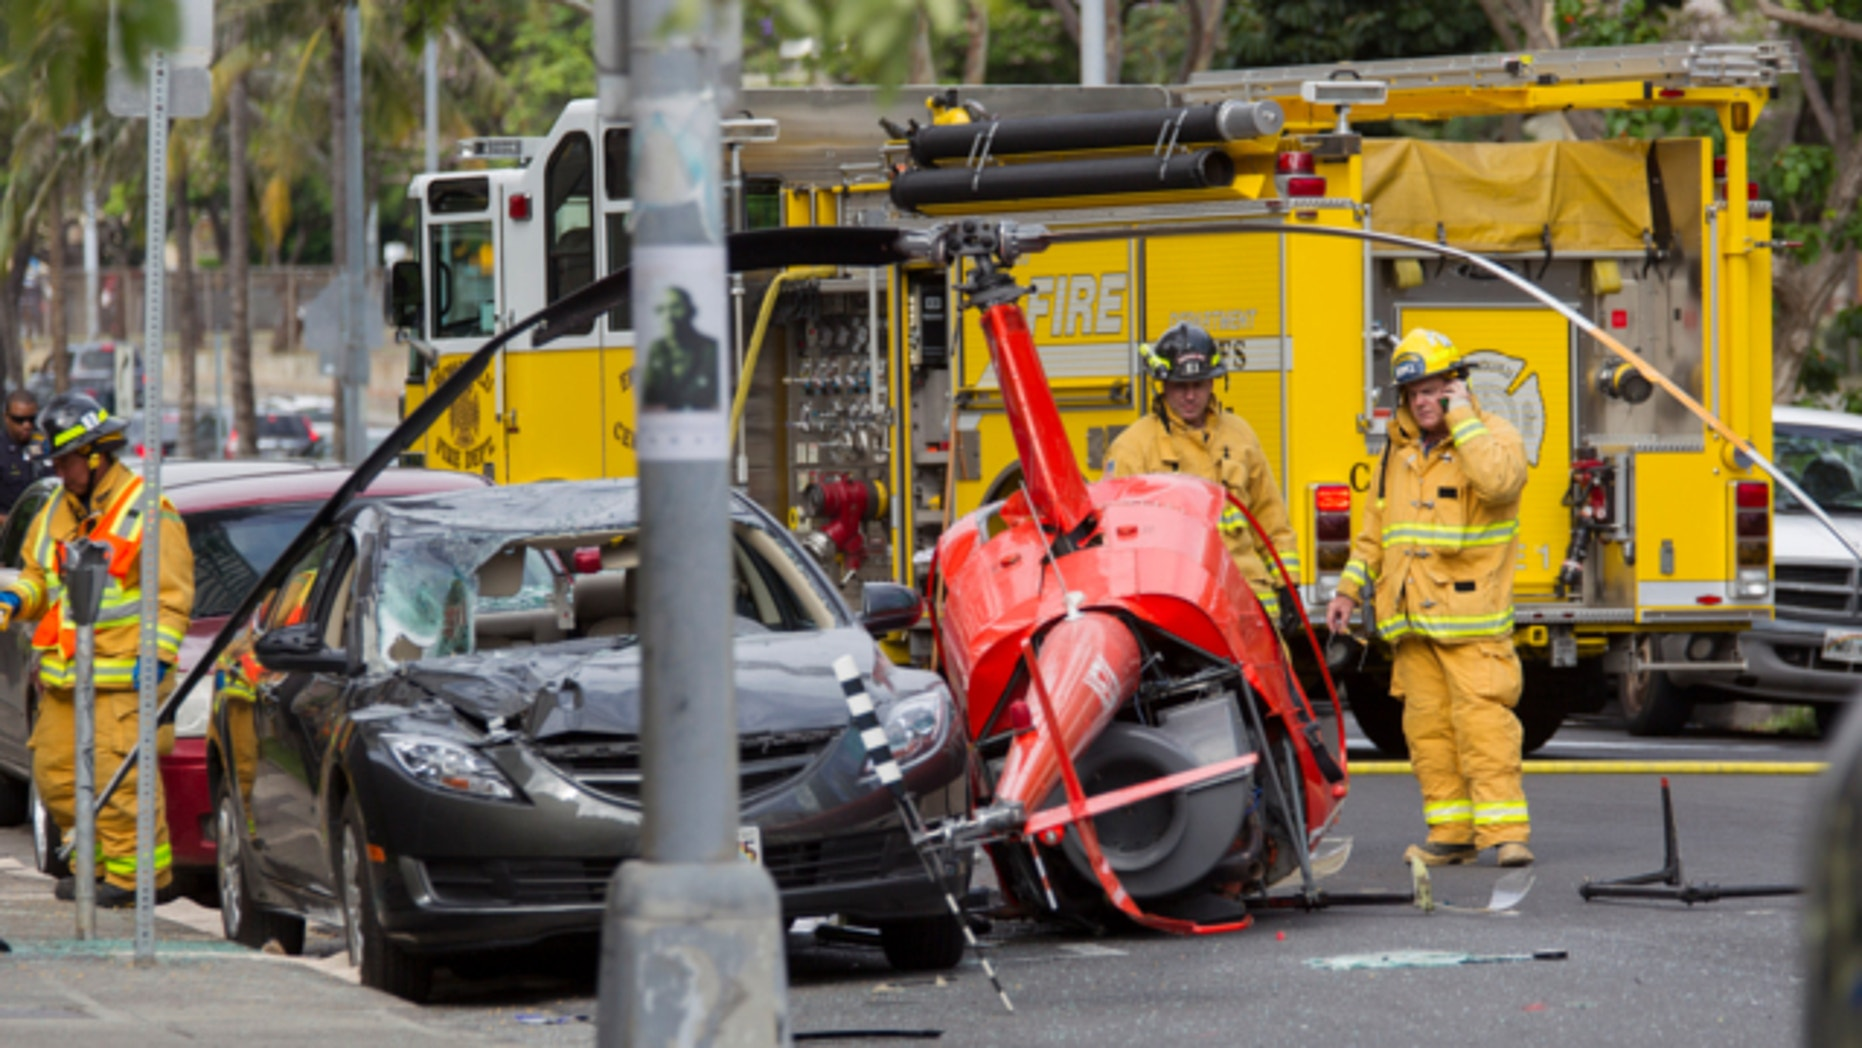 May 8, 2013: Honolulu firefighters look over the wreckage of a small helicopter that crashed next to a car near the intersection of Fort Street and Beretania Street in downtown Honolulu.